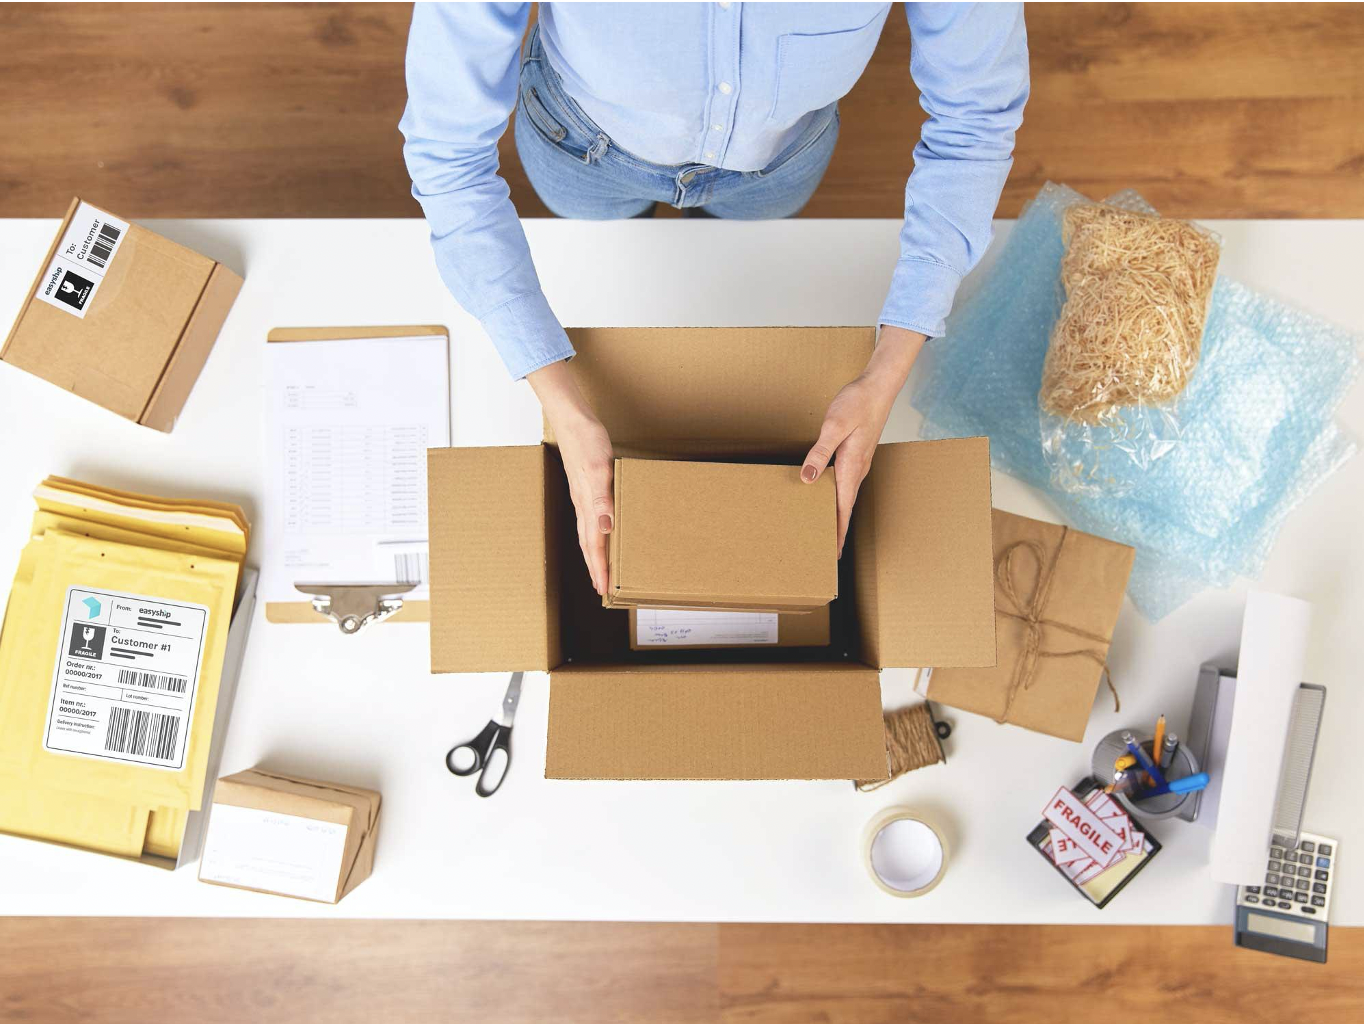 eCommerce merchant packaging a product